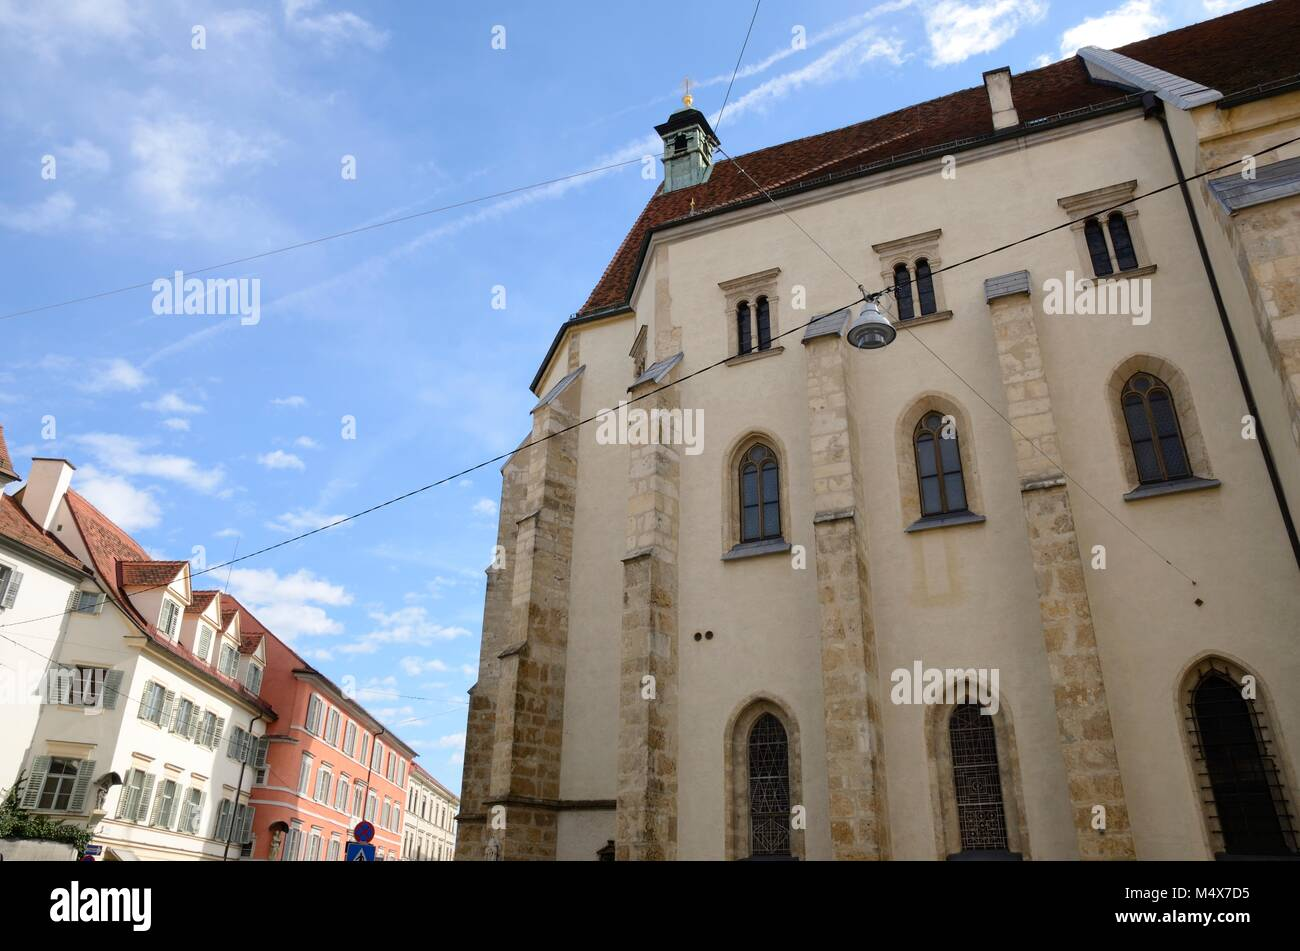 cathedral in graz stockfotos cathedral in graz bilder alamy. Black Bedroom Furniture Sets. Home Design Ideas